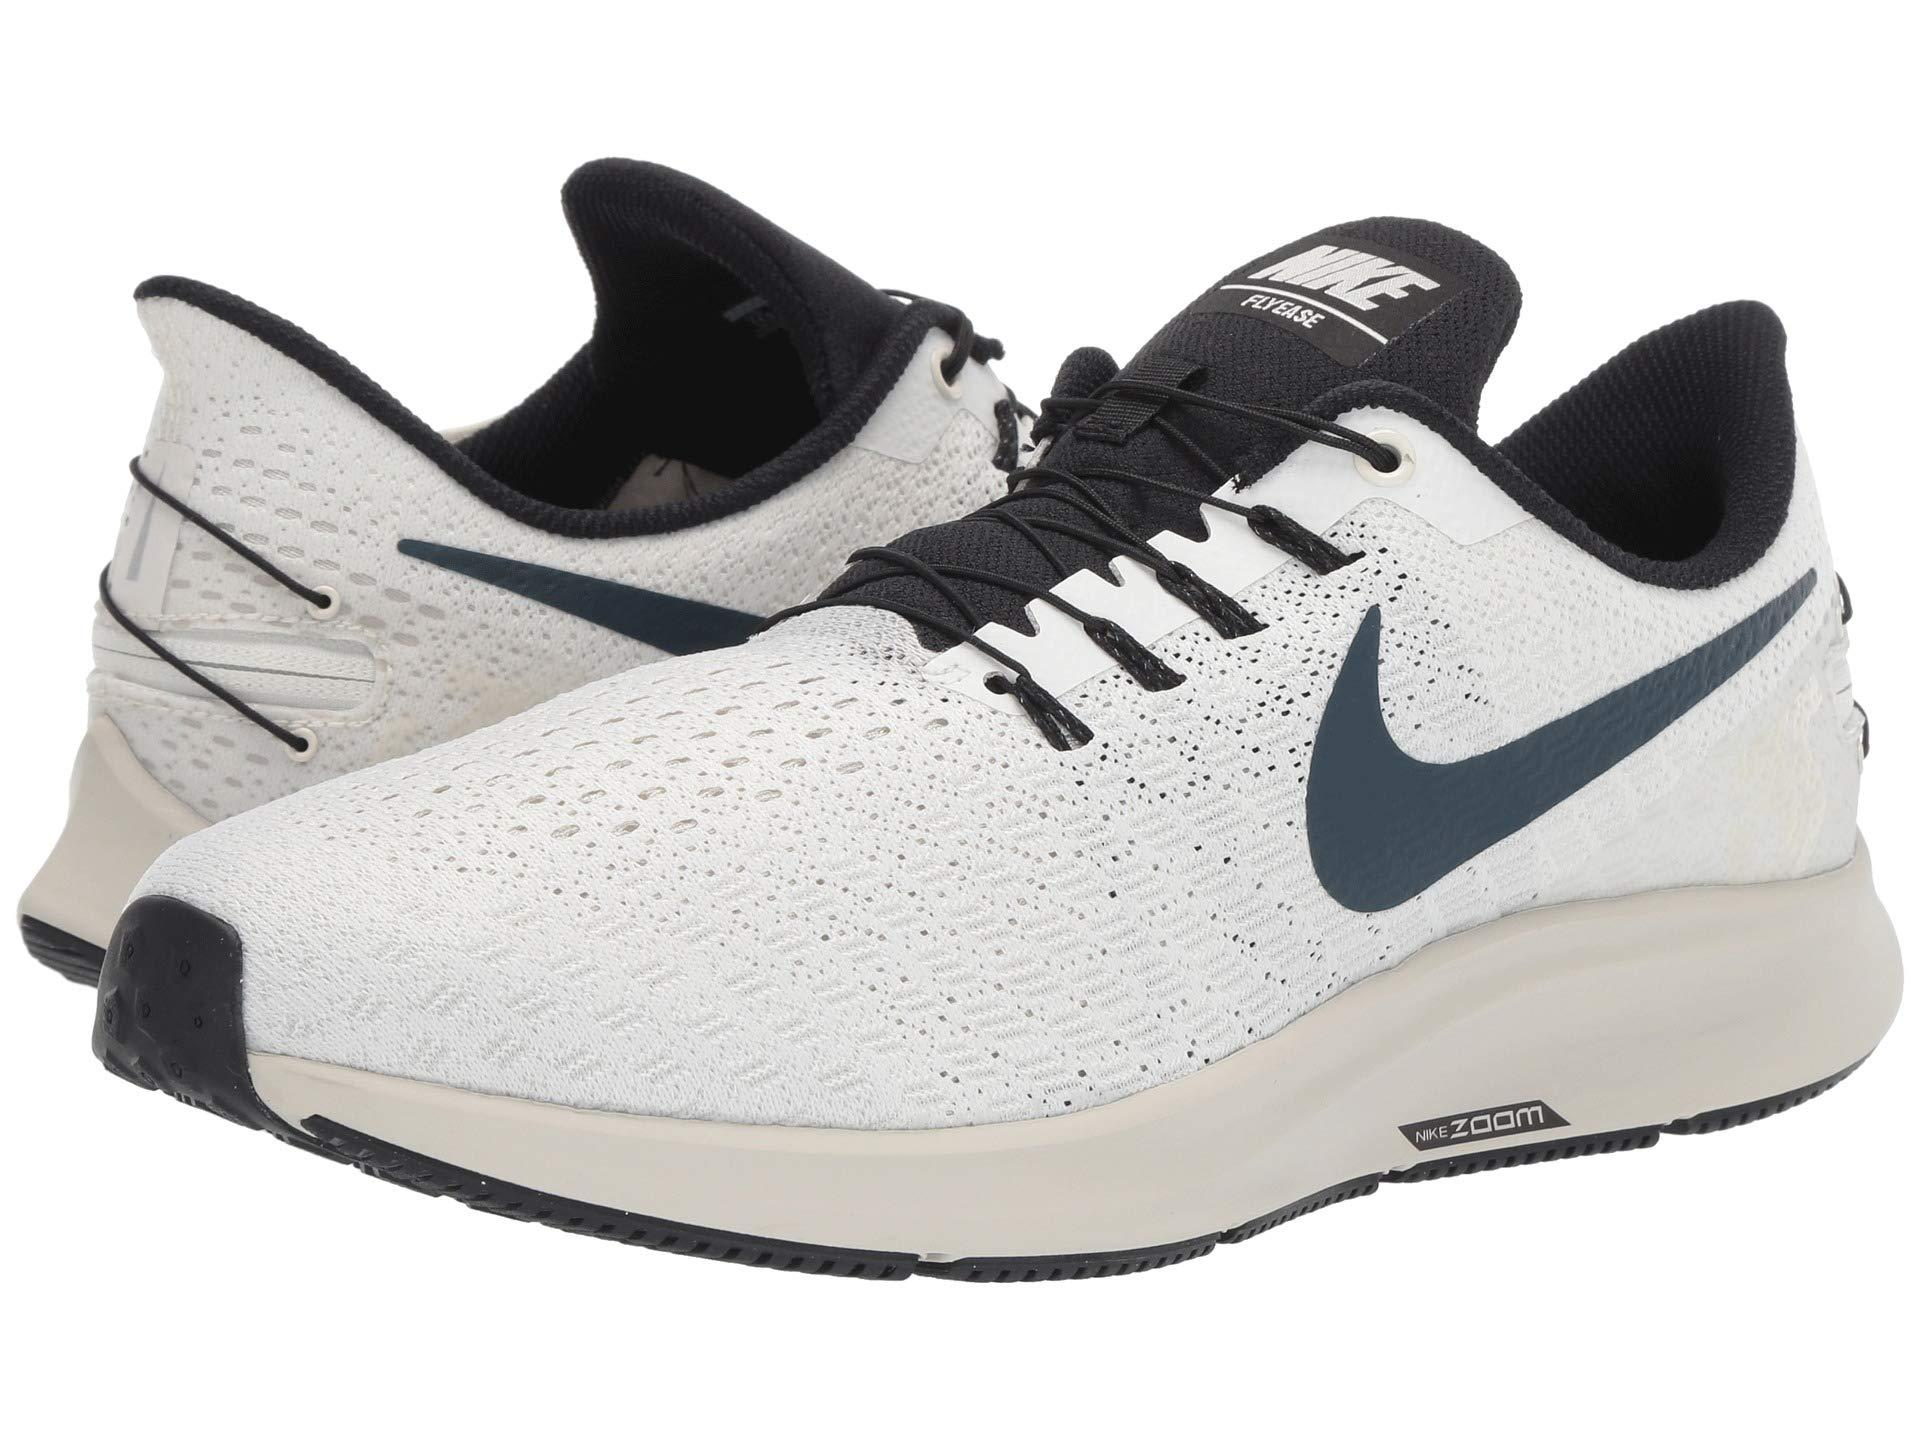 best service 41a4b 258e8 Air Zoom Pegasus 35 Flyease (sail/armory Navy/black/light Bone) Men's  Running Shoes